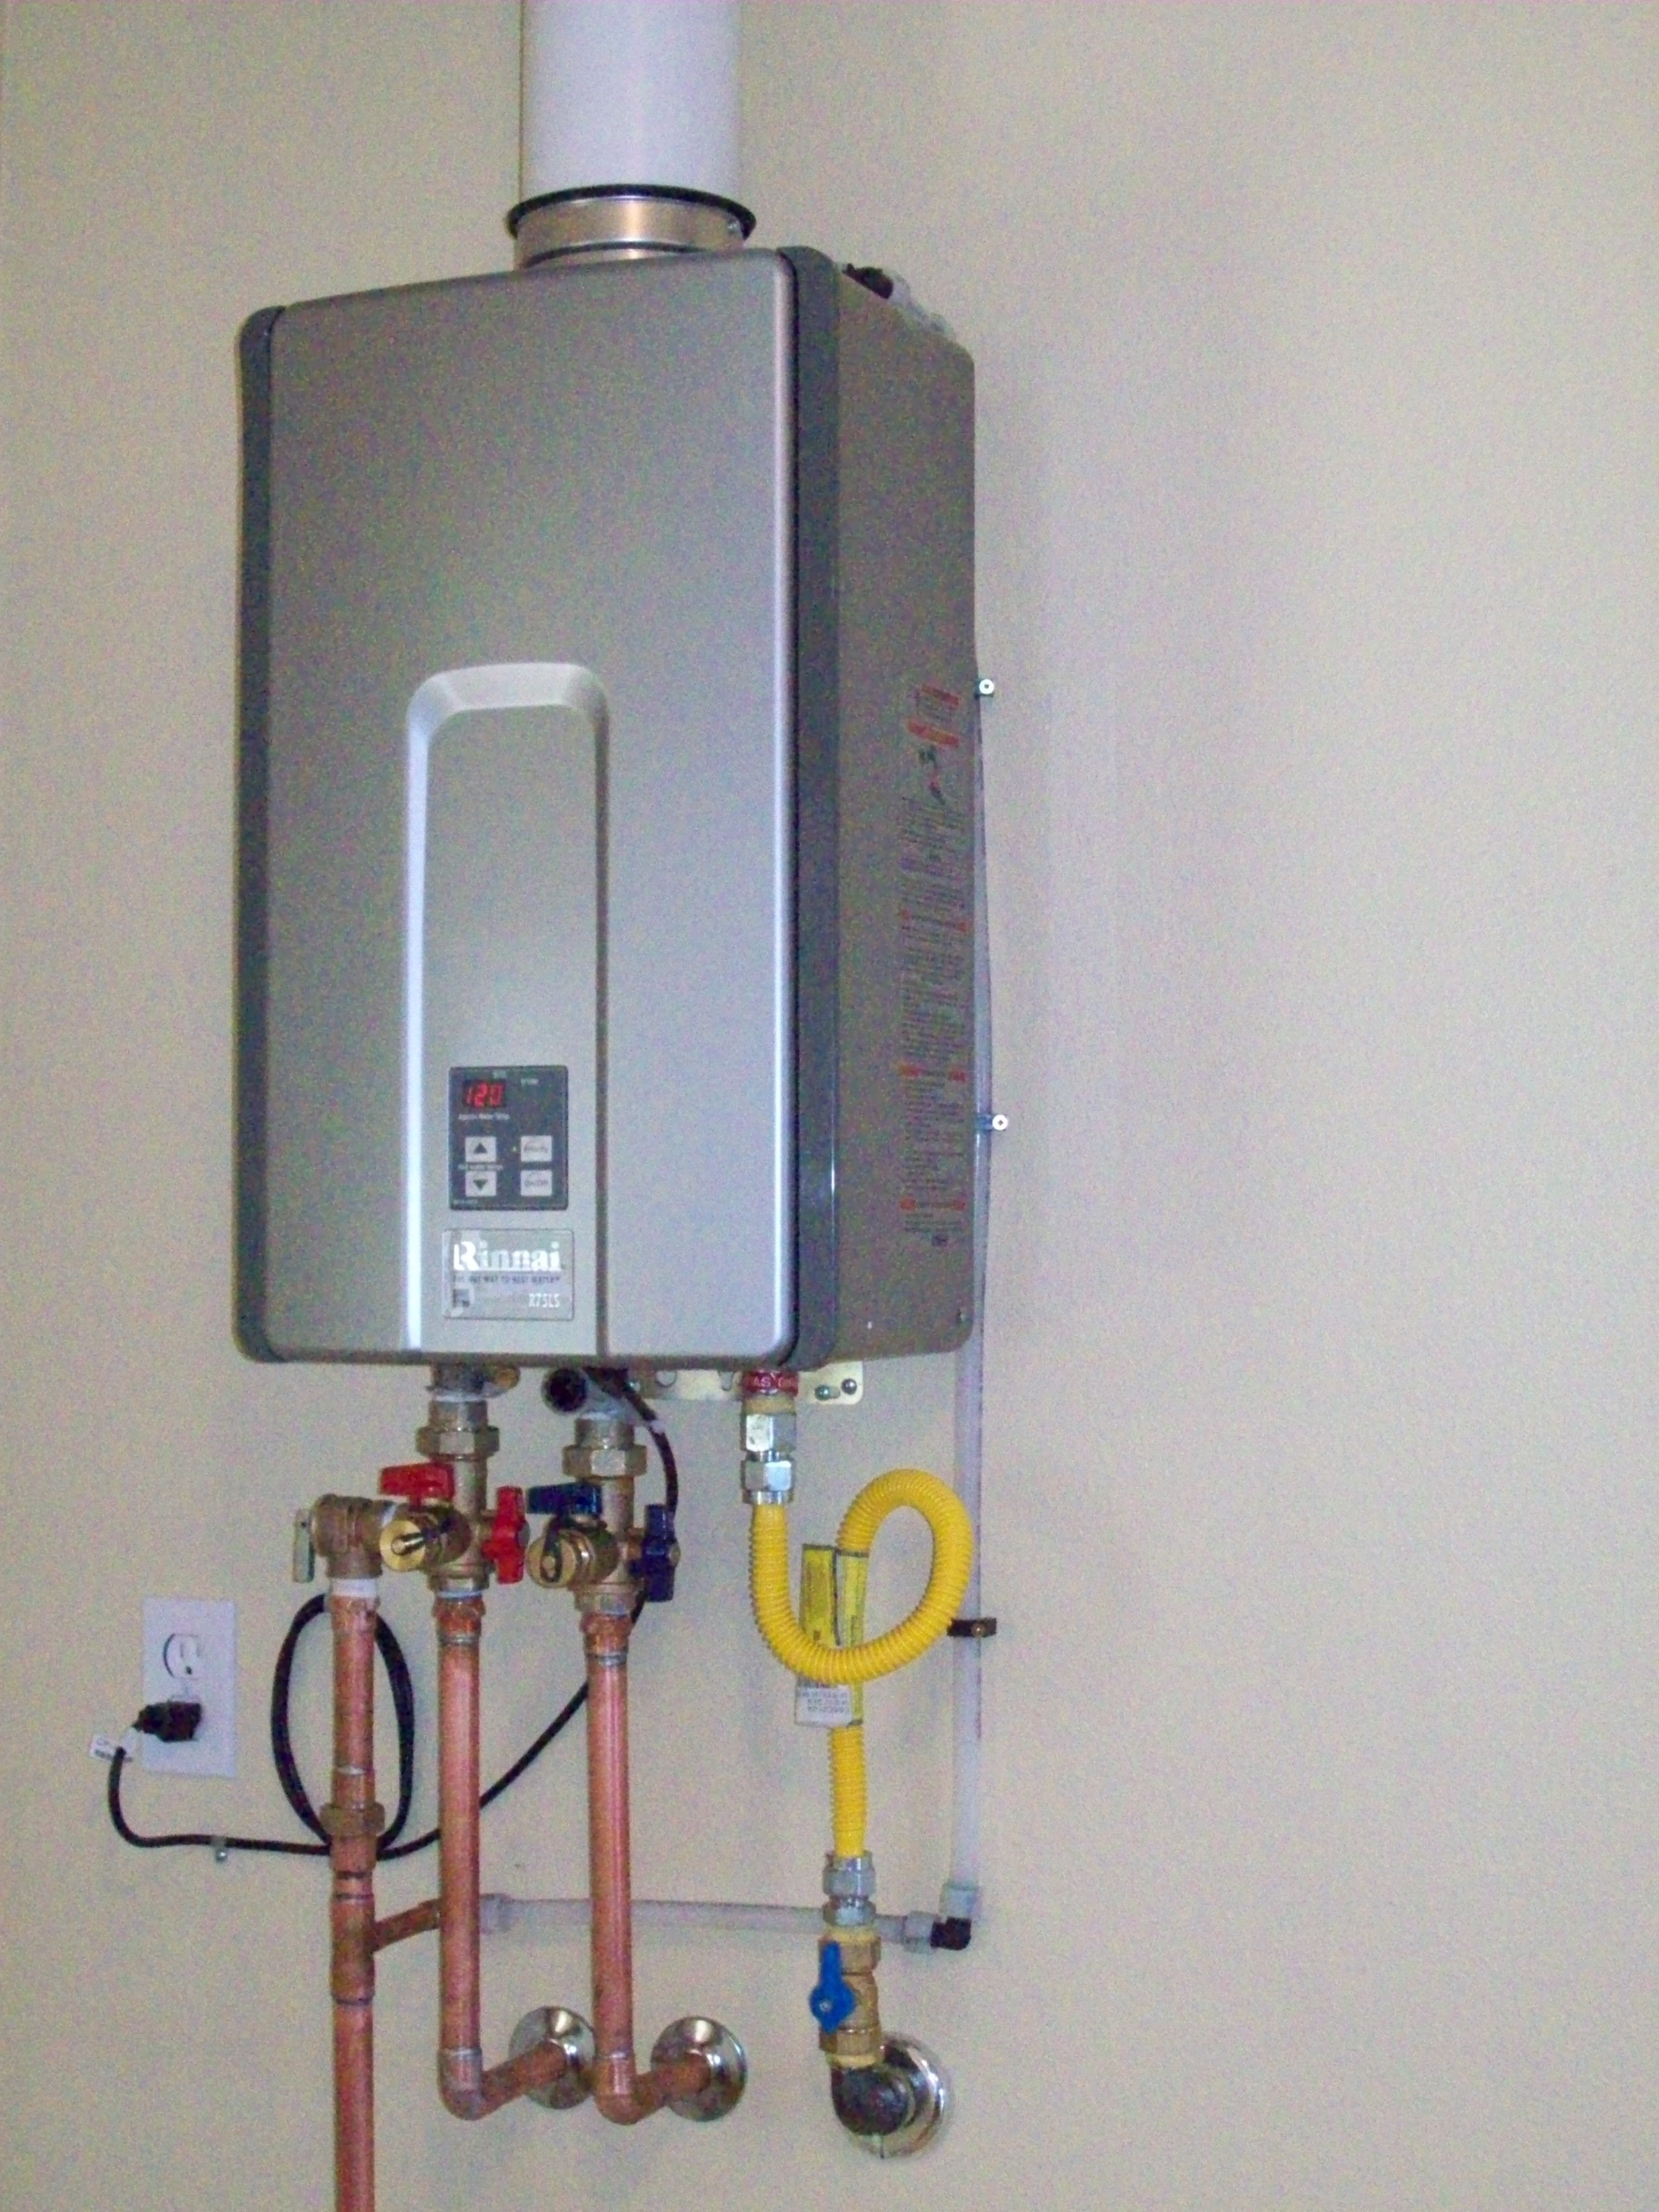 Rinnai R94lsi Review Interior Natural Gas Water Heater